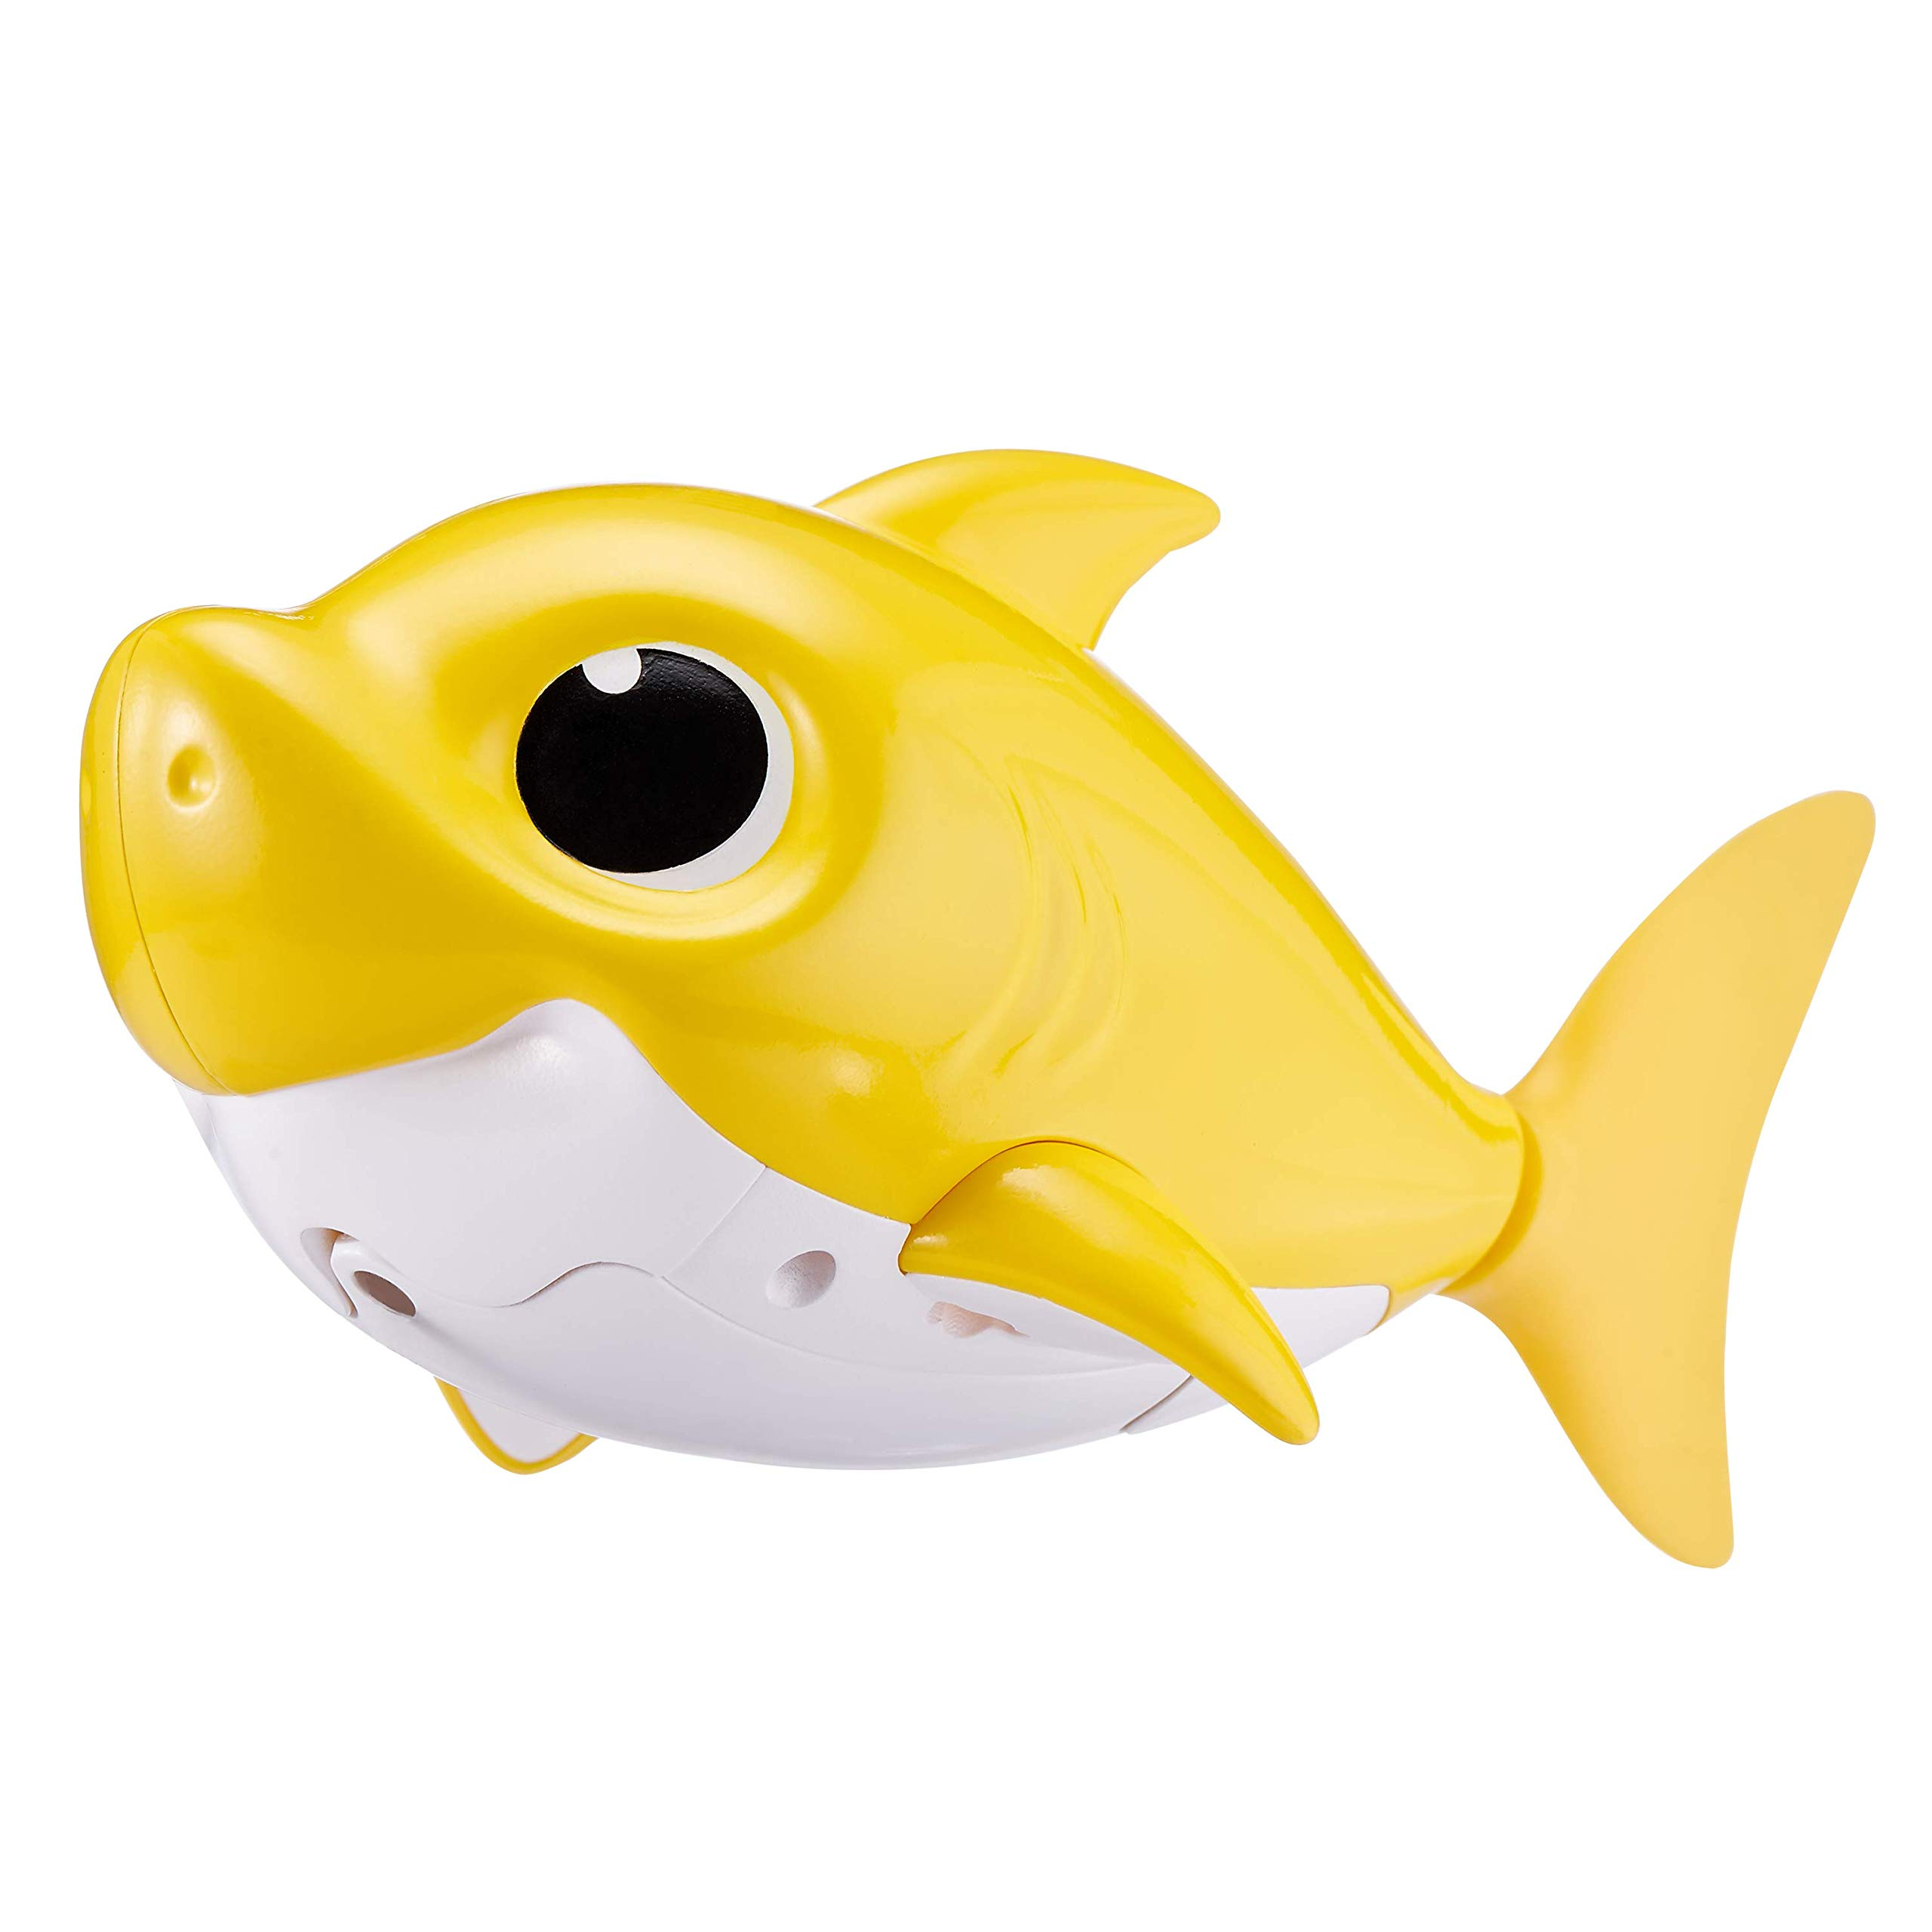 Robo Alive Junior Baby Shark Battery-Powered Sing and Swim Bath Toy by ZURU - Baby Shark (Yellow) by Robo Alive Junior (Image #3)